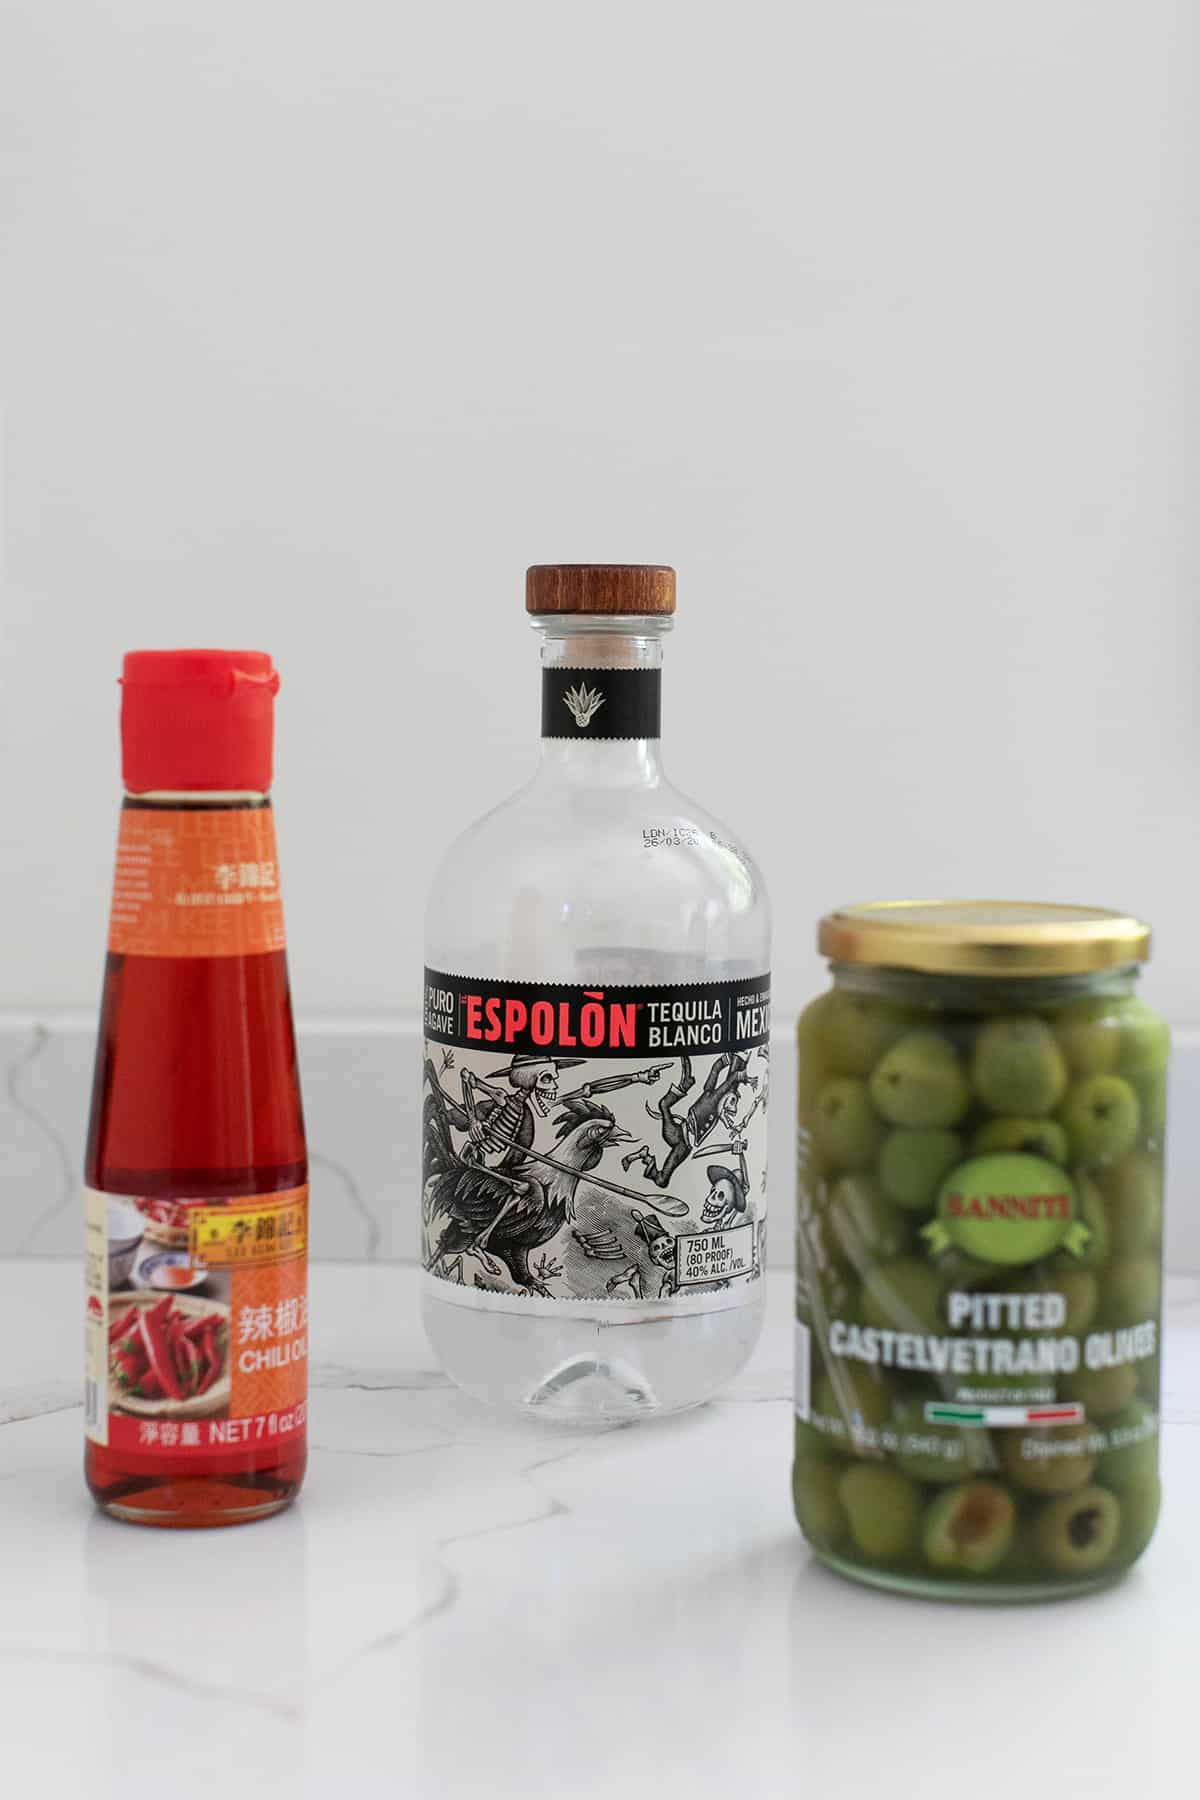 Espolon tequila, olives and chili oil